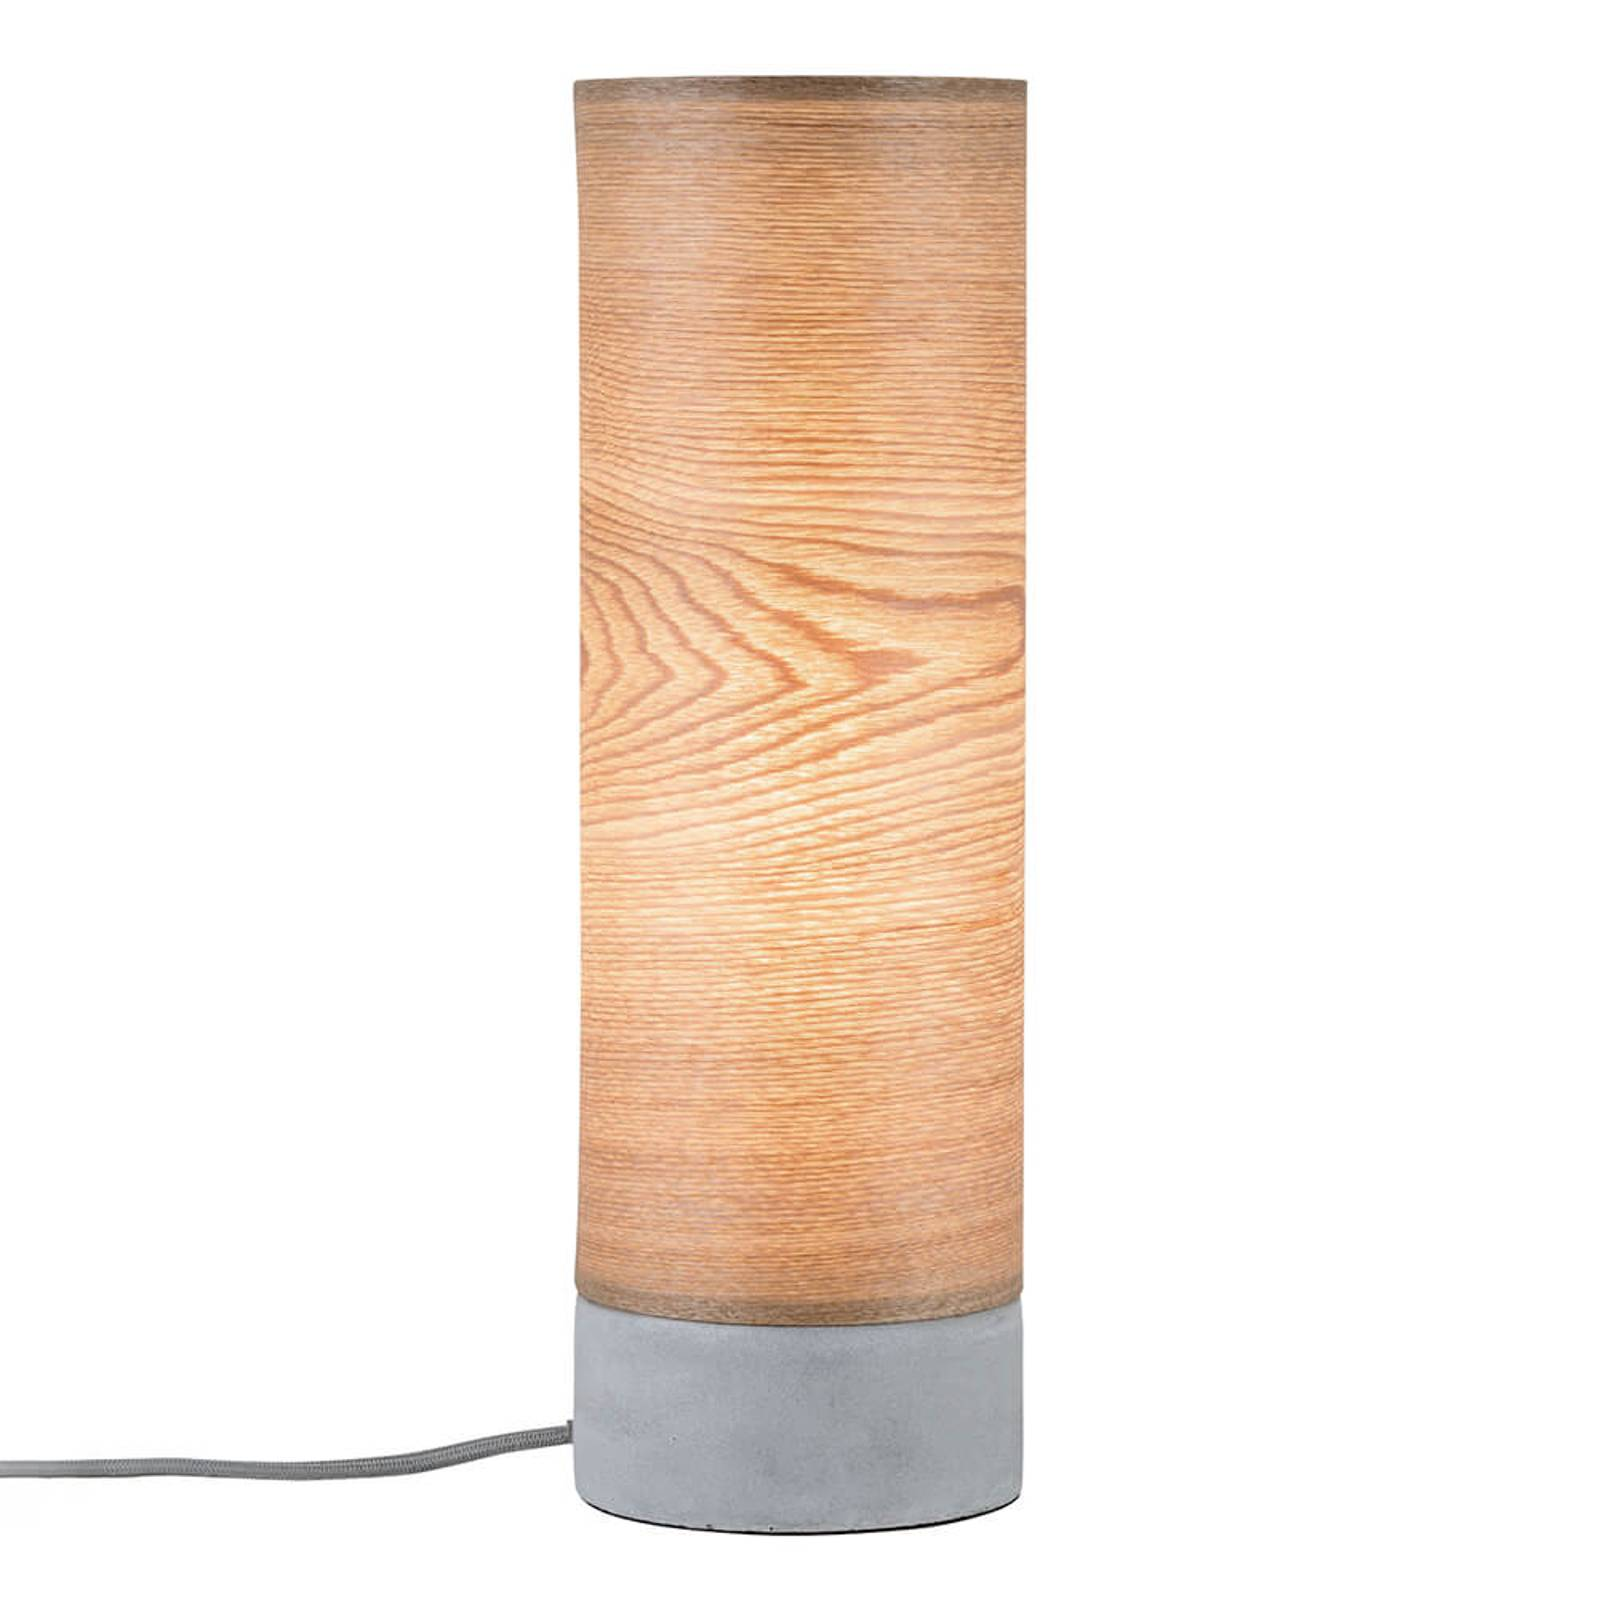 Cylindrical wood table lamp Skadi- concrete base from Paulmann